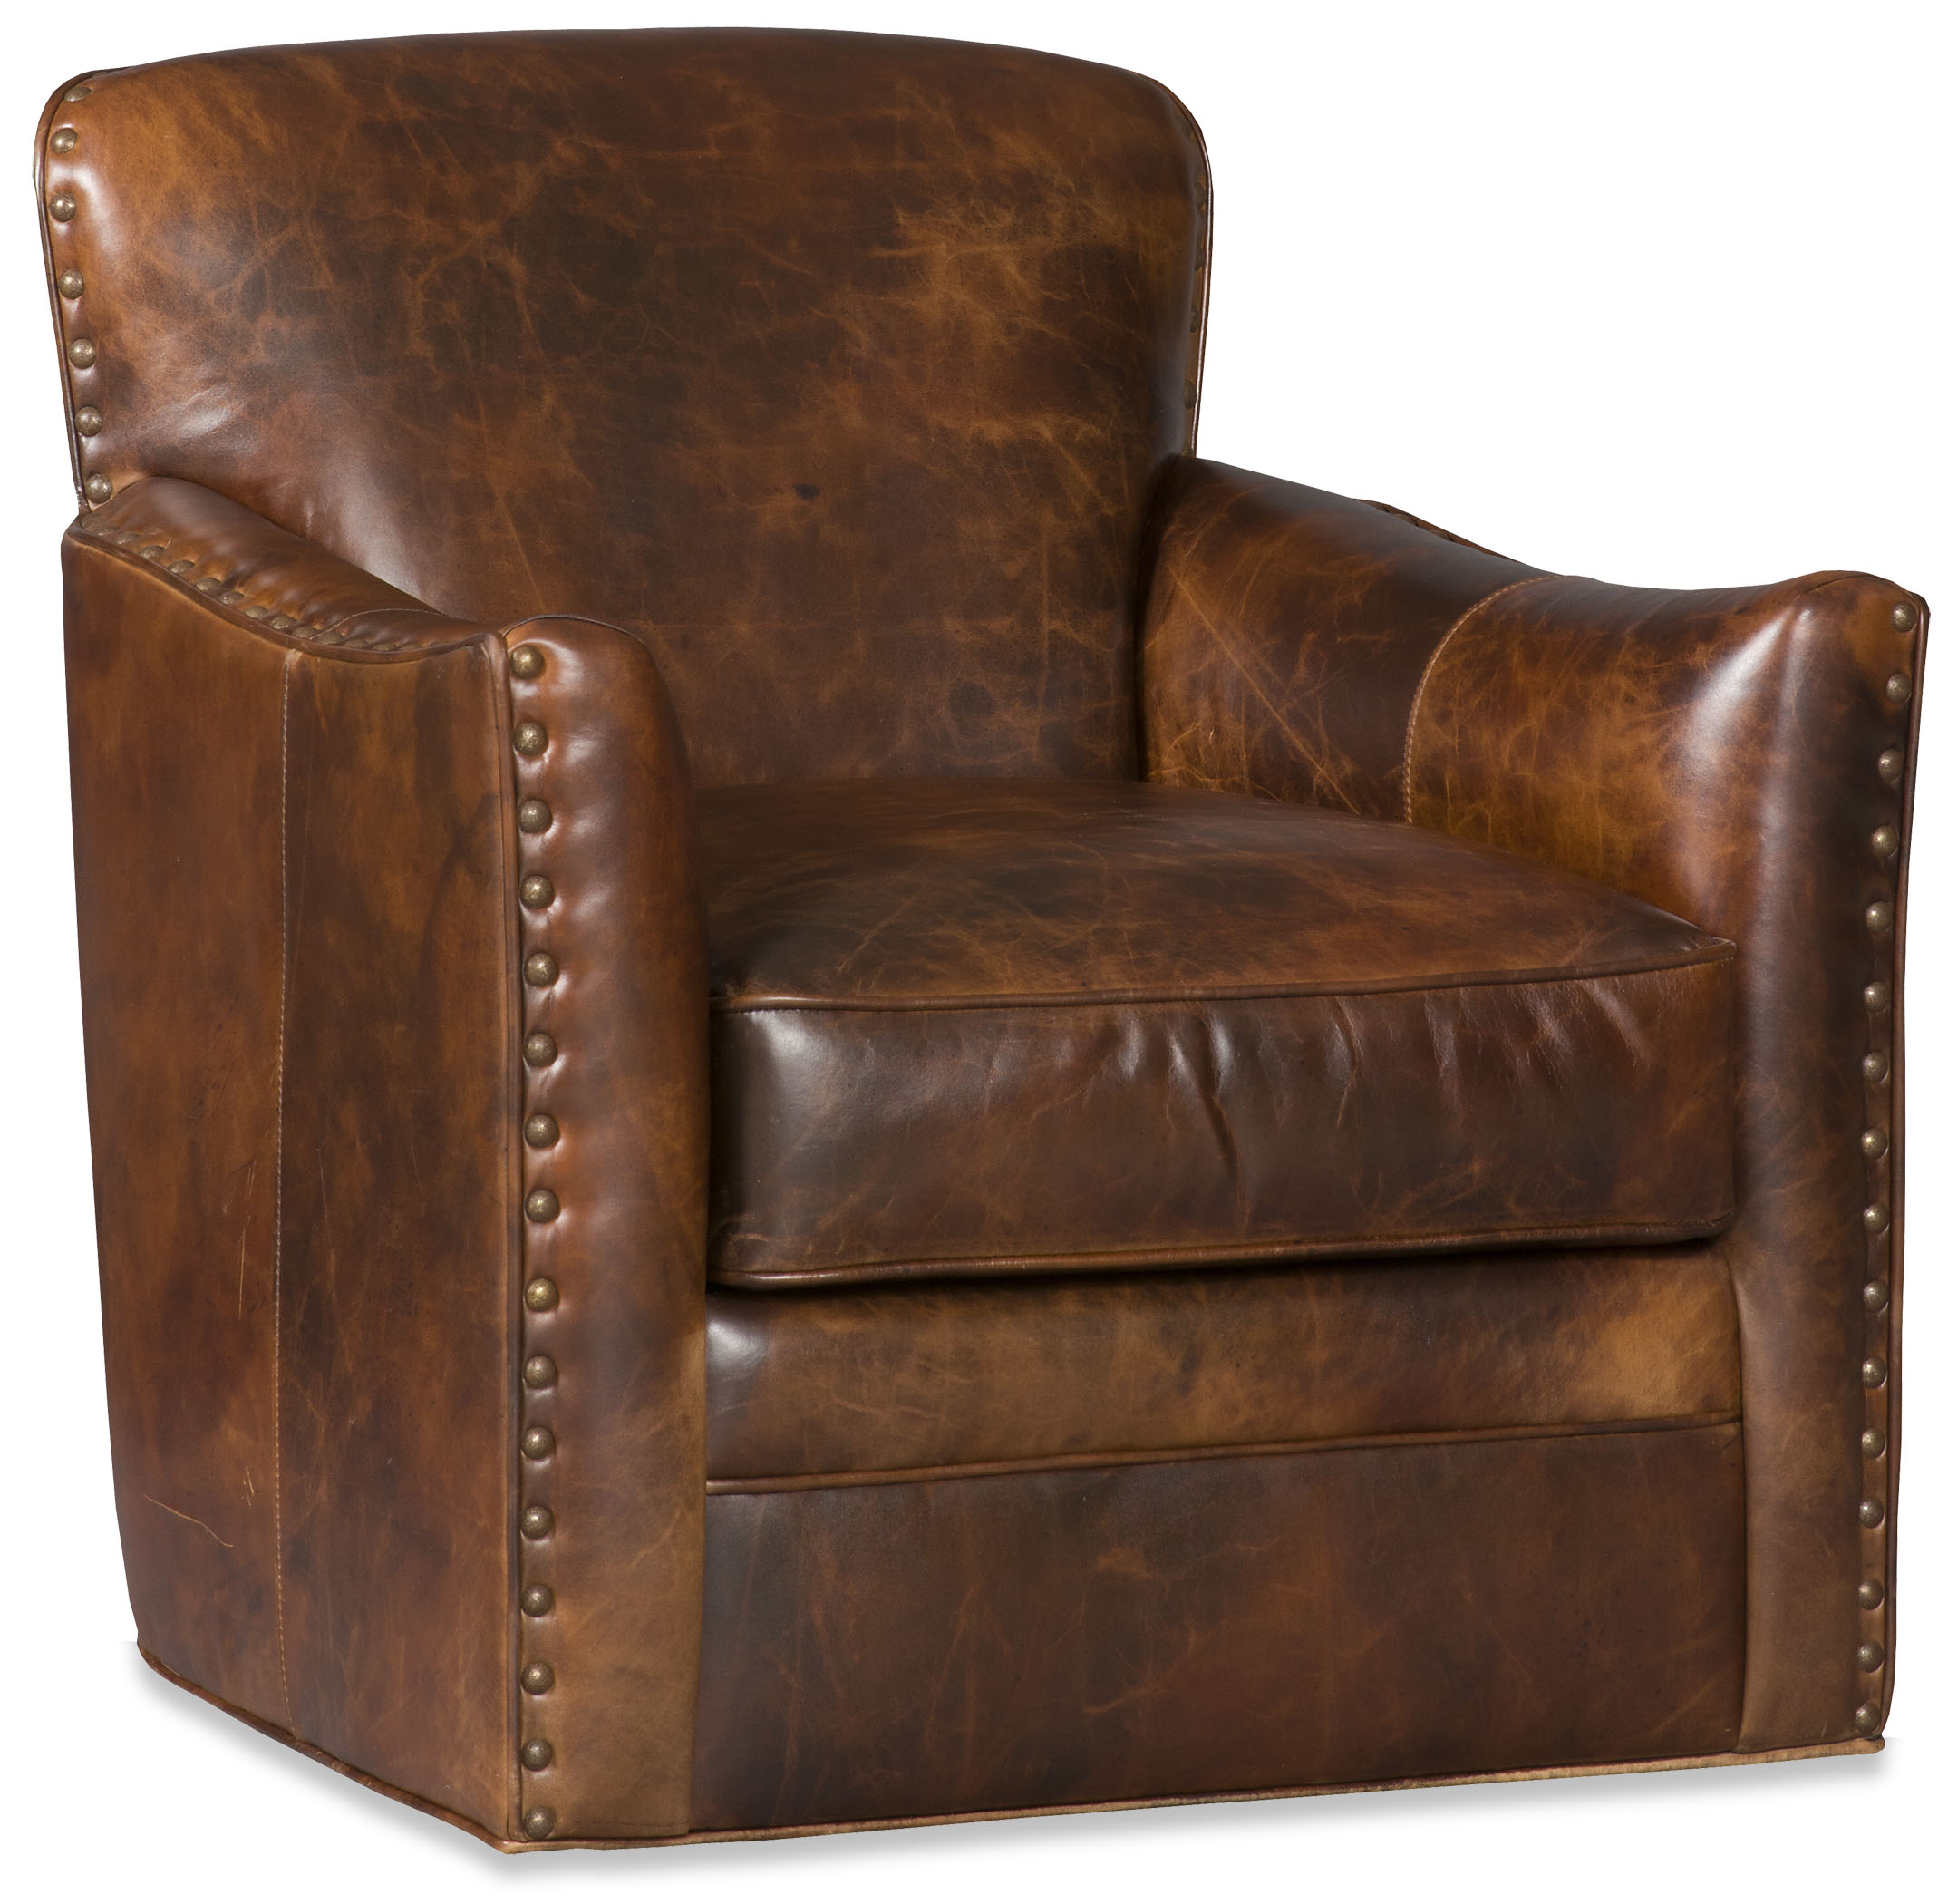 Leather Swivel Chairs Luna Leather Swivel Chair